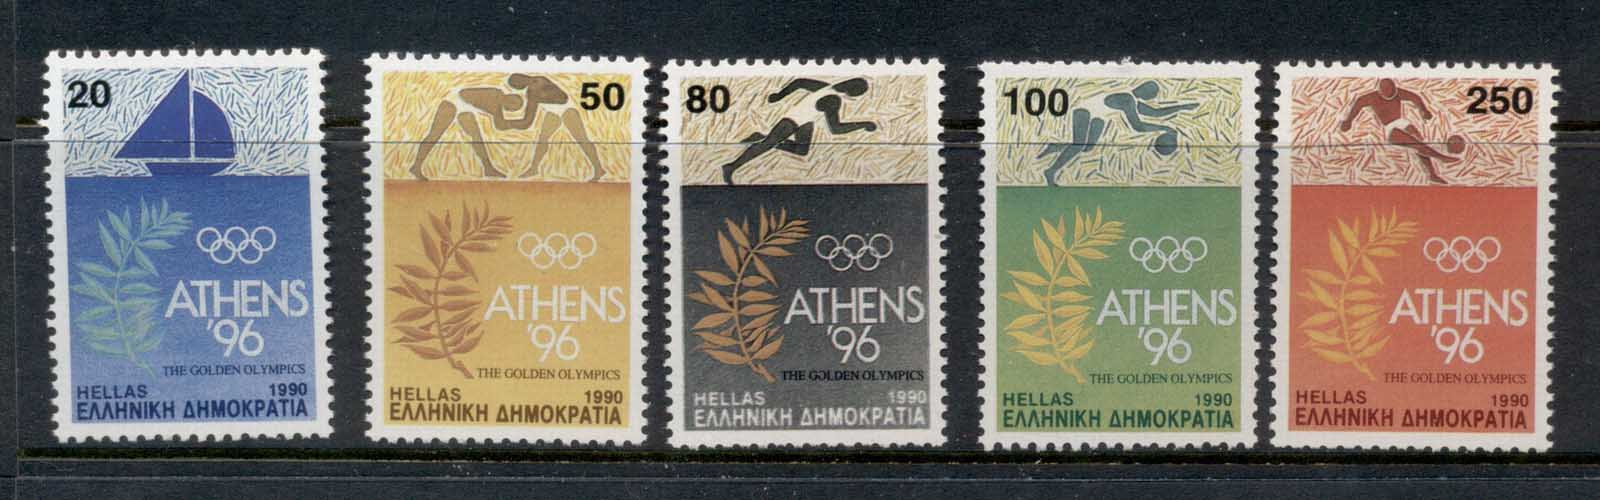 Greece 1990 Summer Olympics Bid MUH